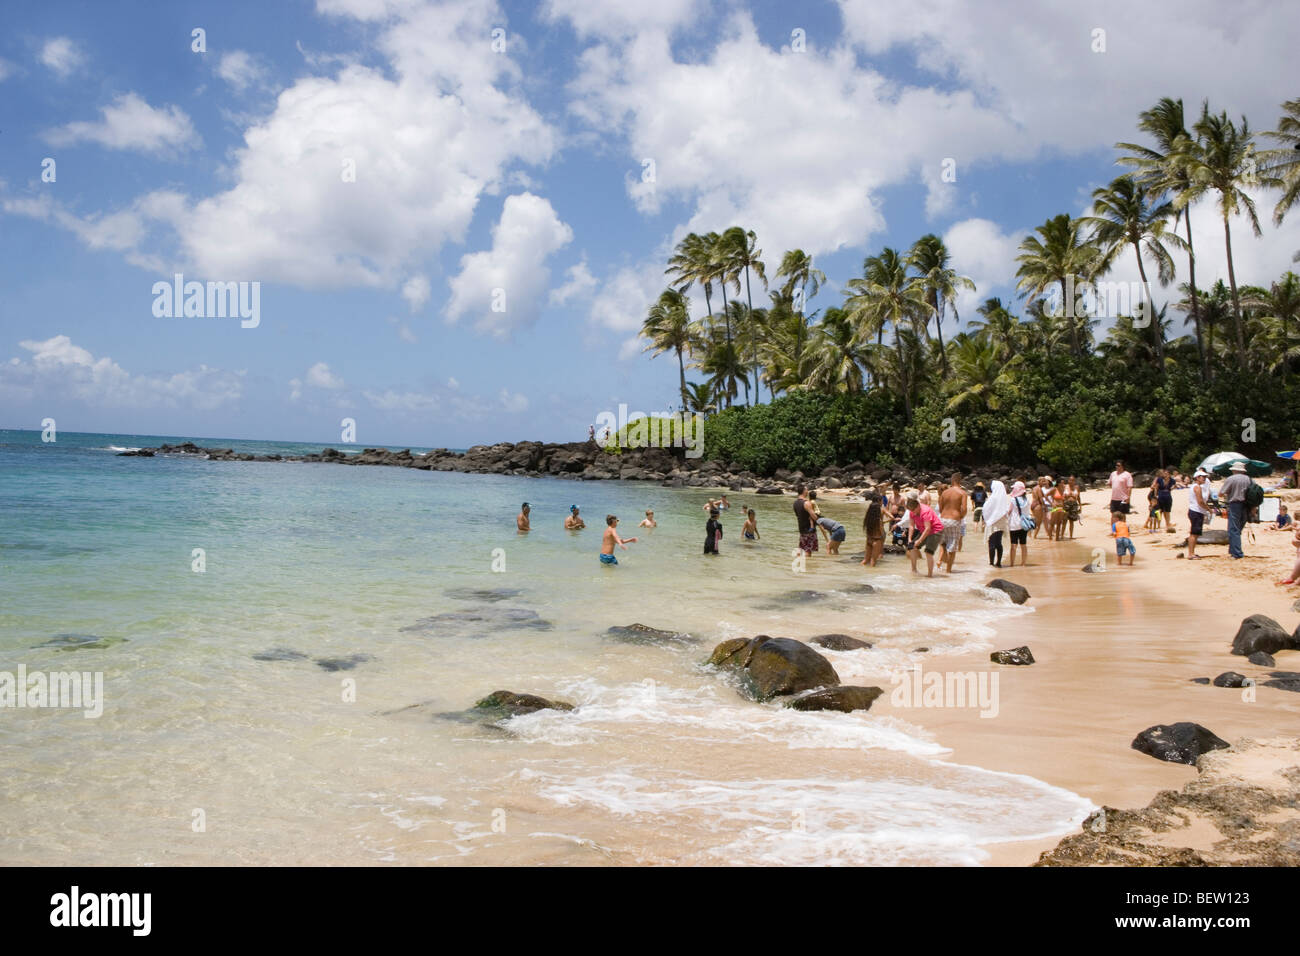 Laniakea Beach Stock Photos & Laniakea Beach Stock Images - Alamy